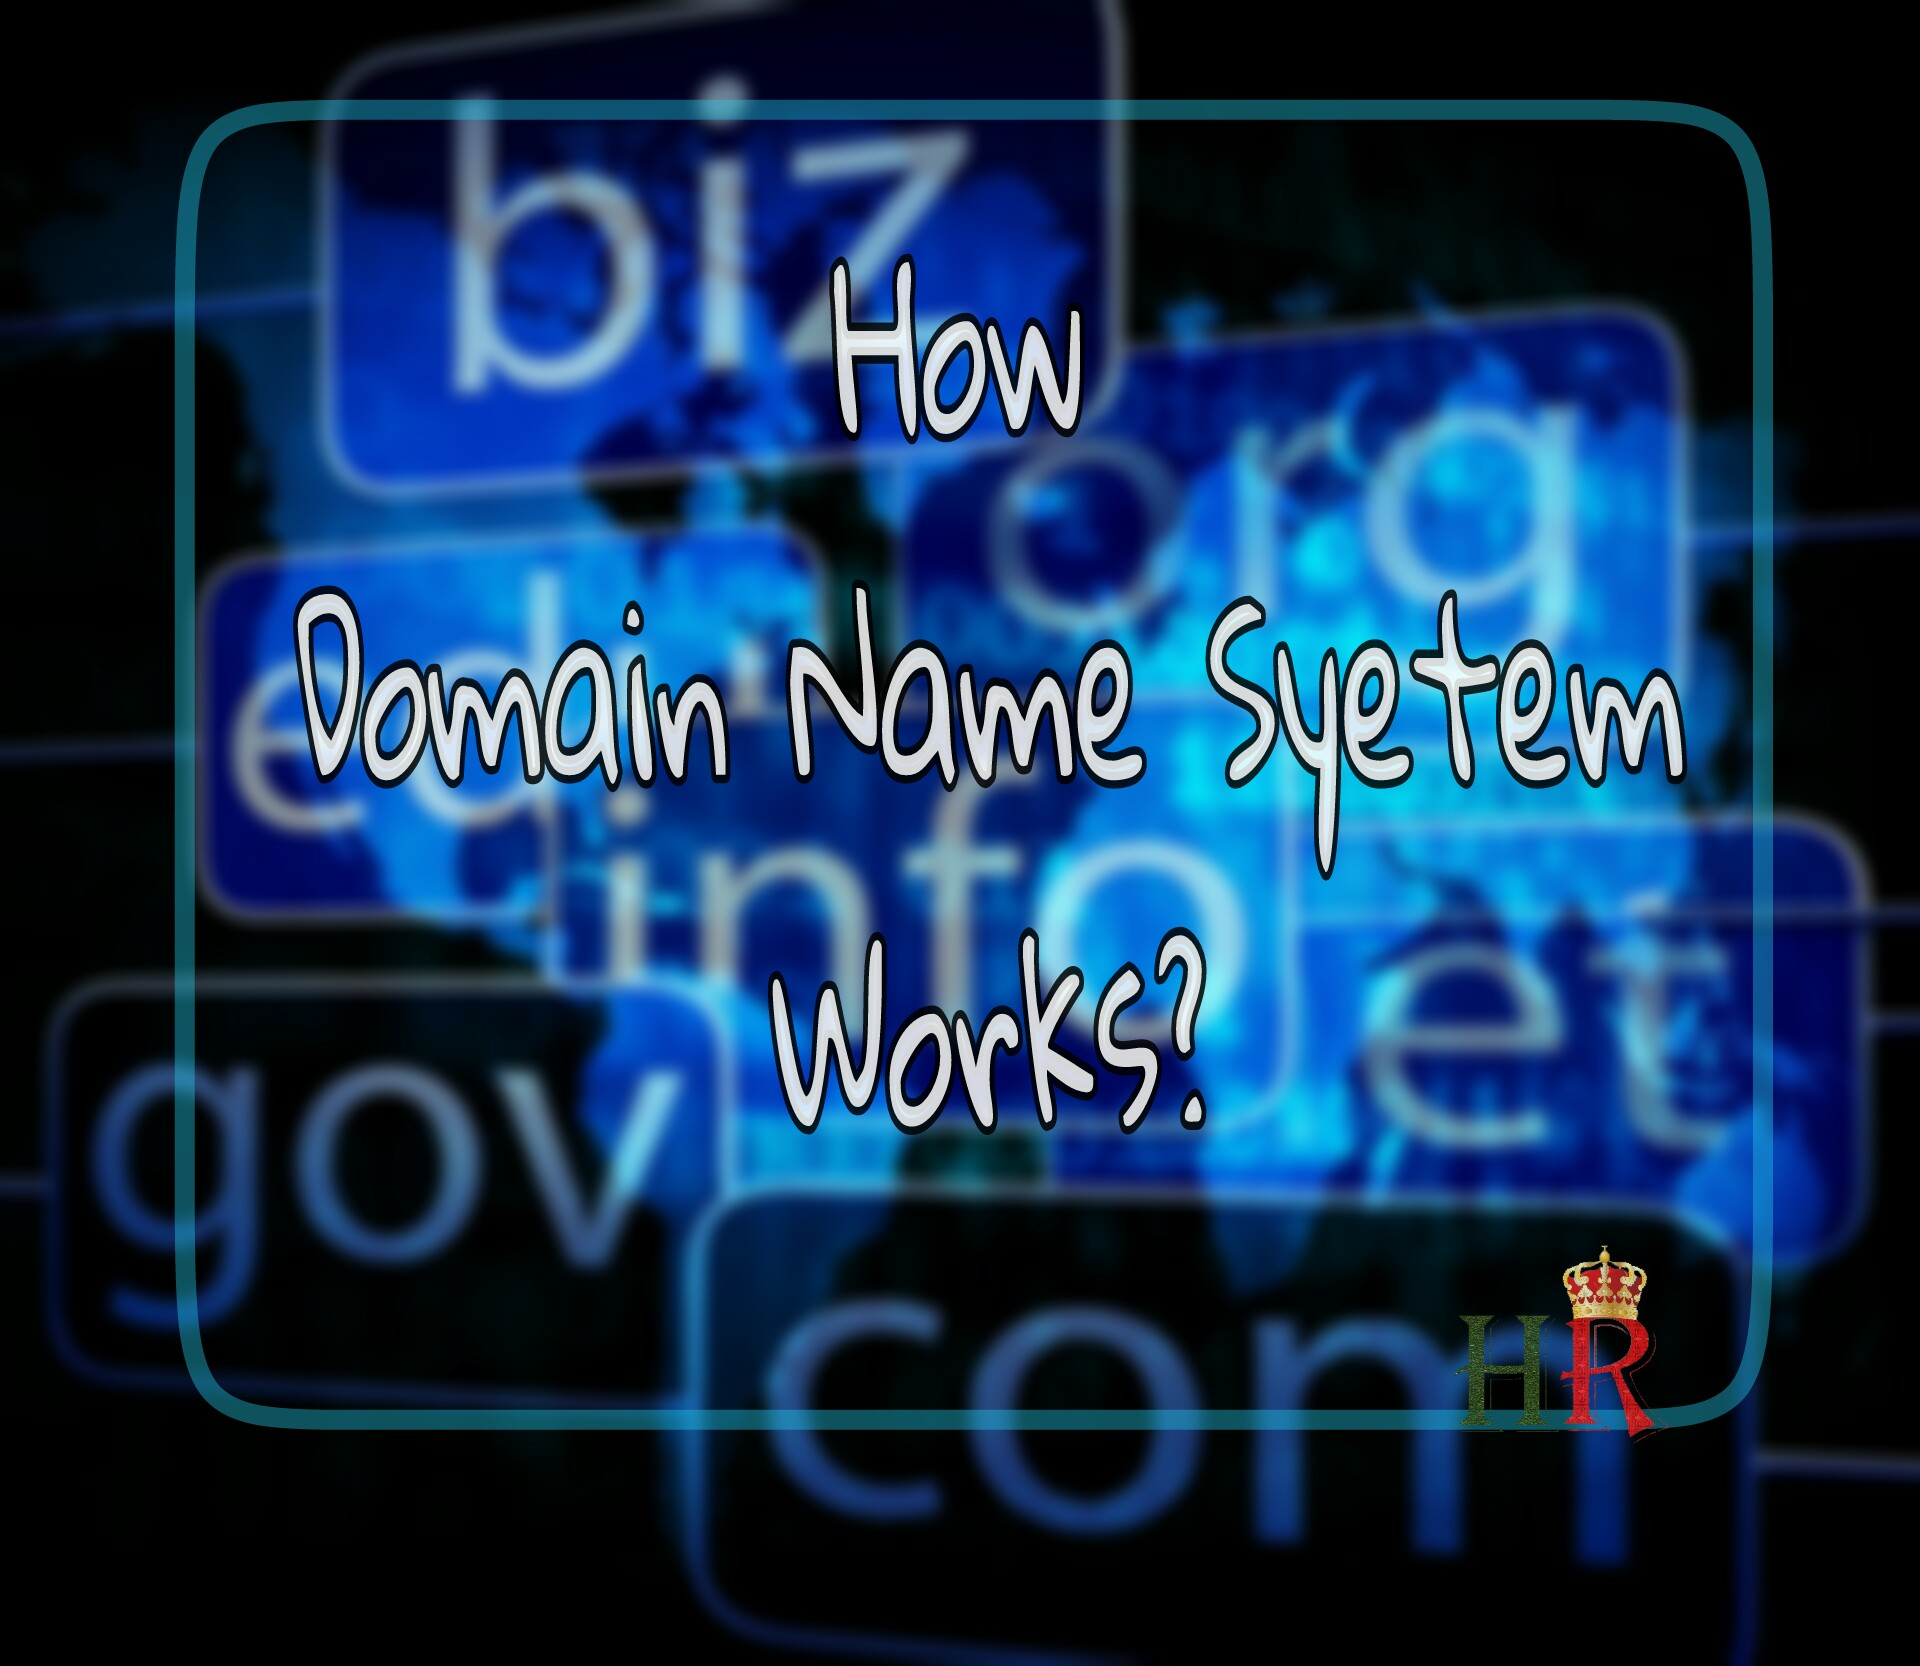 How does Domain Name System (DNS) work